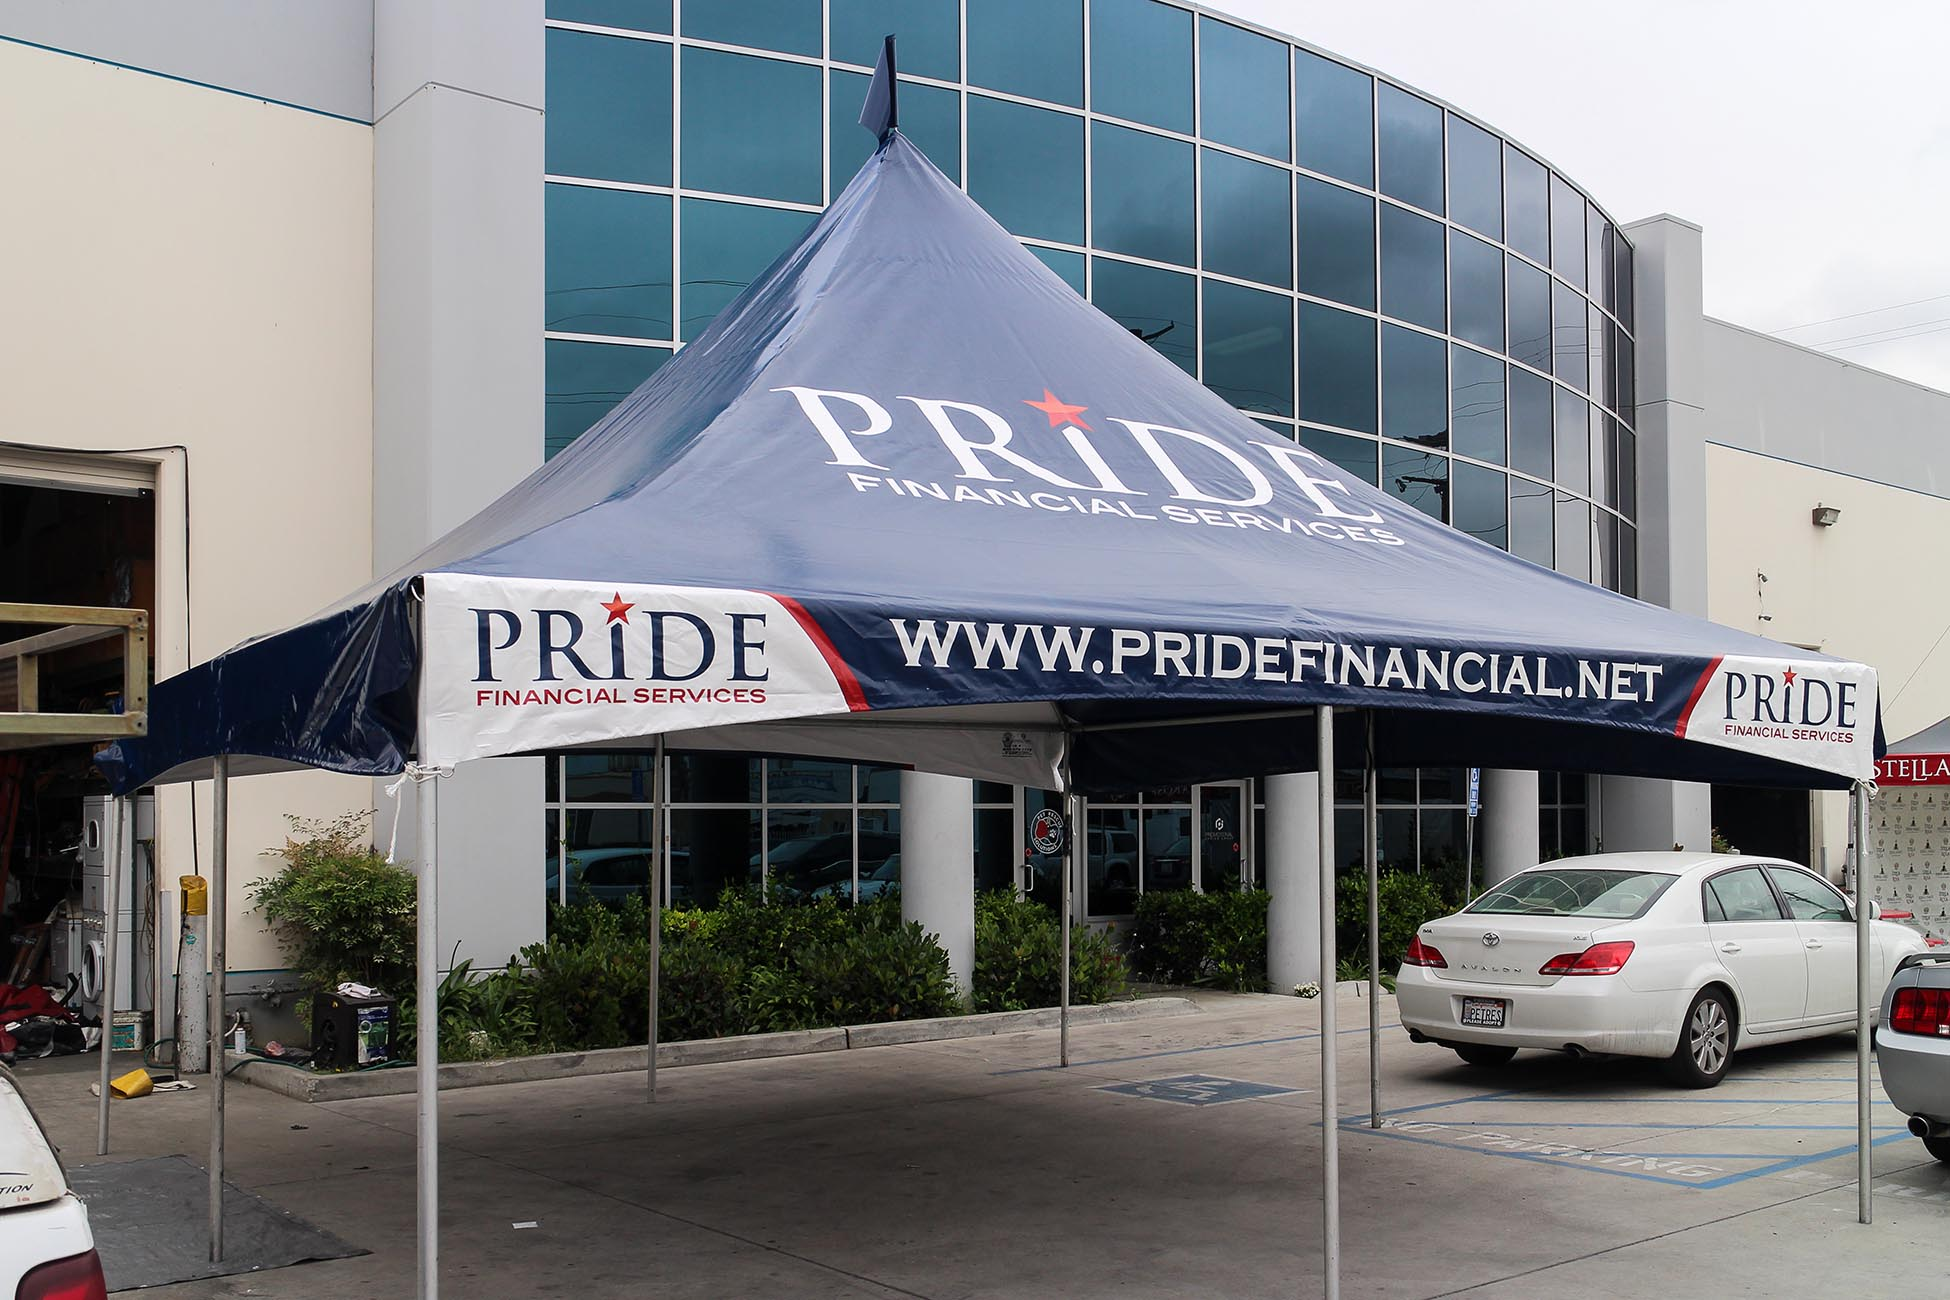 pride-financial-services-frame-tent